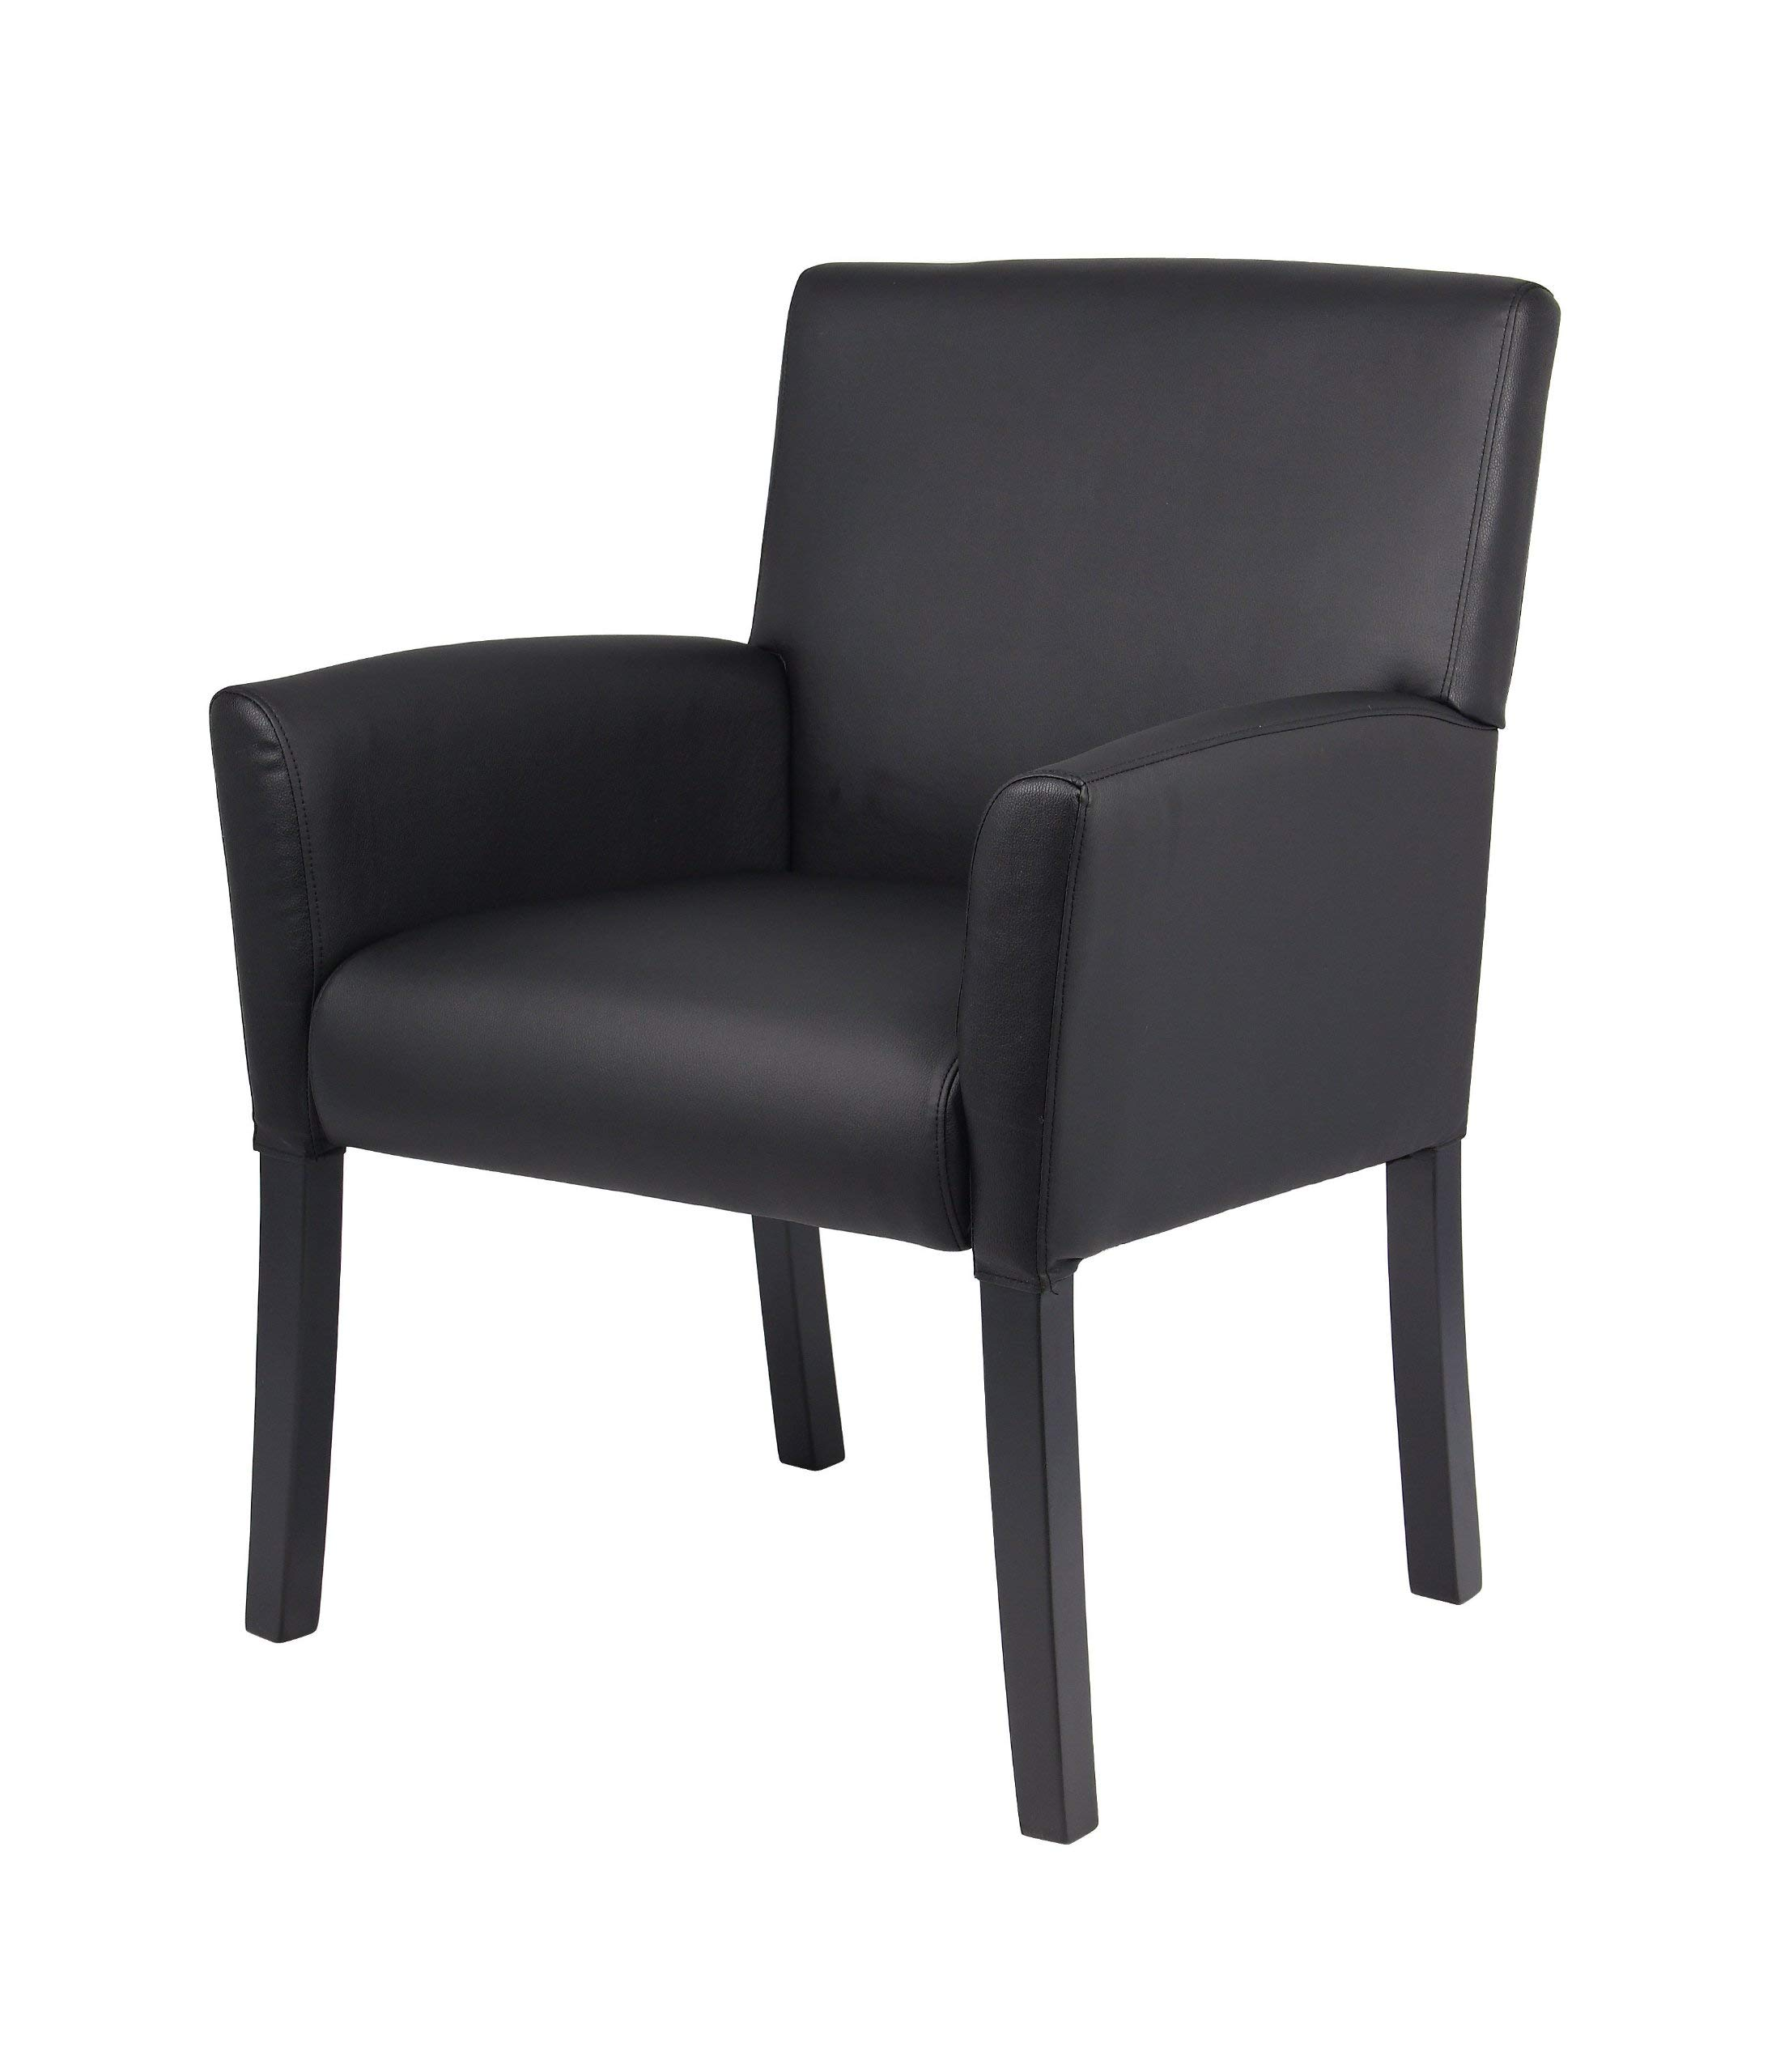 Boss Office Products B639-BK Executive Box Arm Chair with Mahogany Finish in Black by Boss Office Products (Image #5)